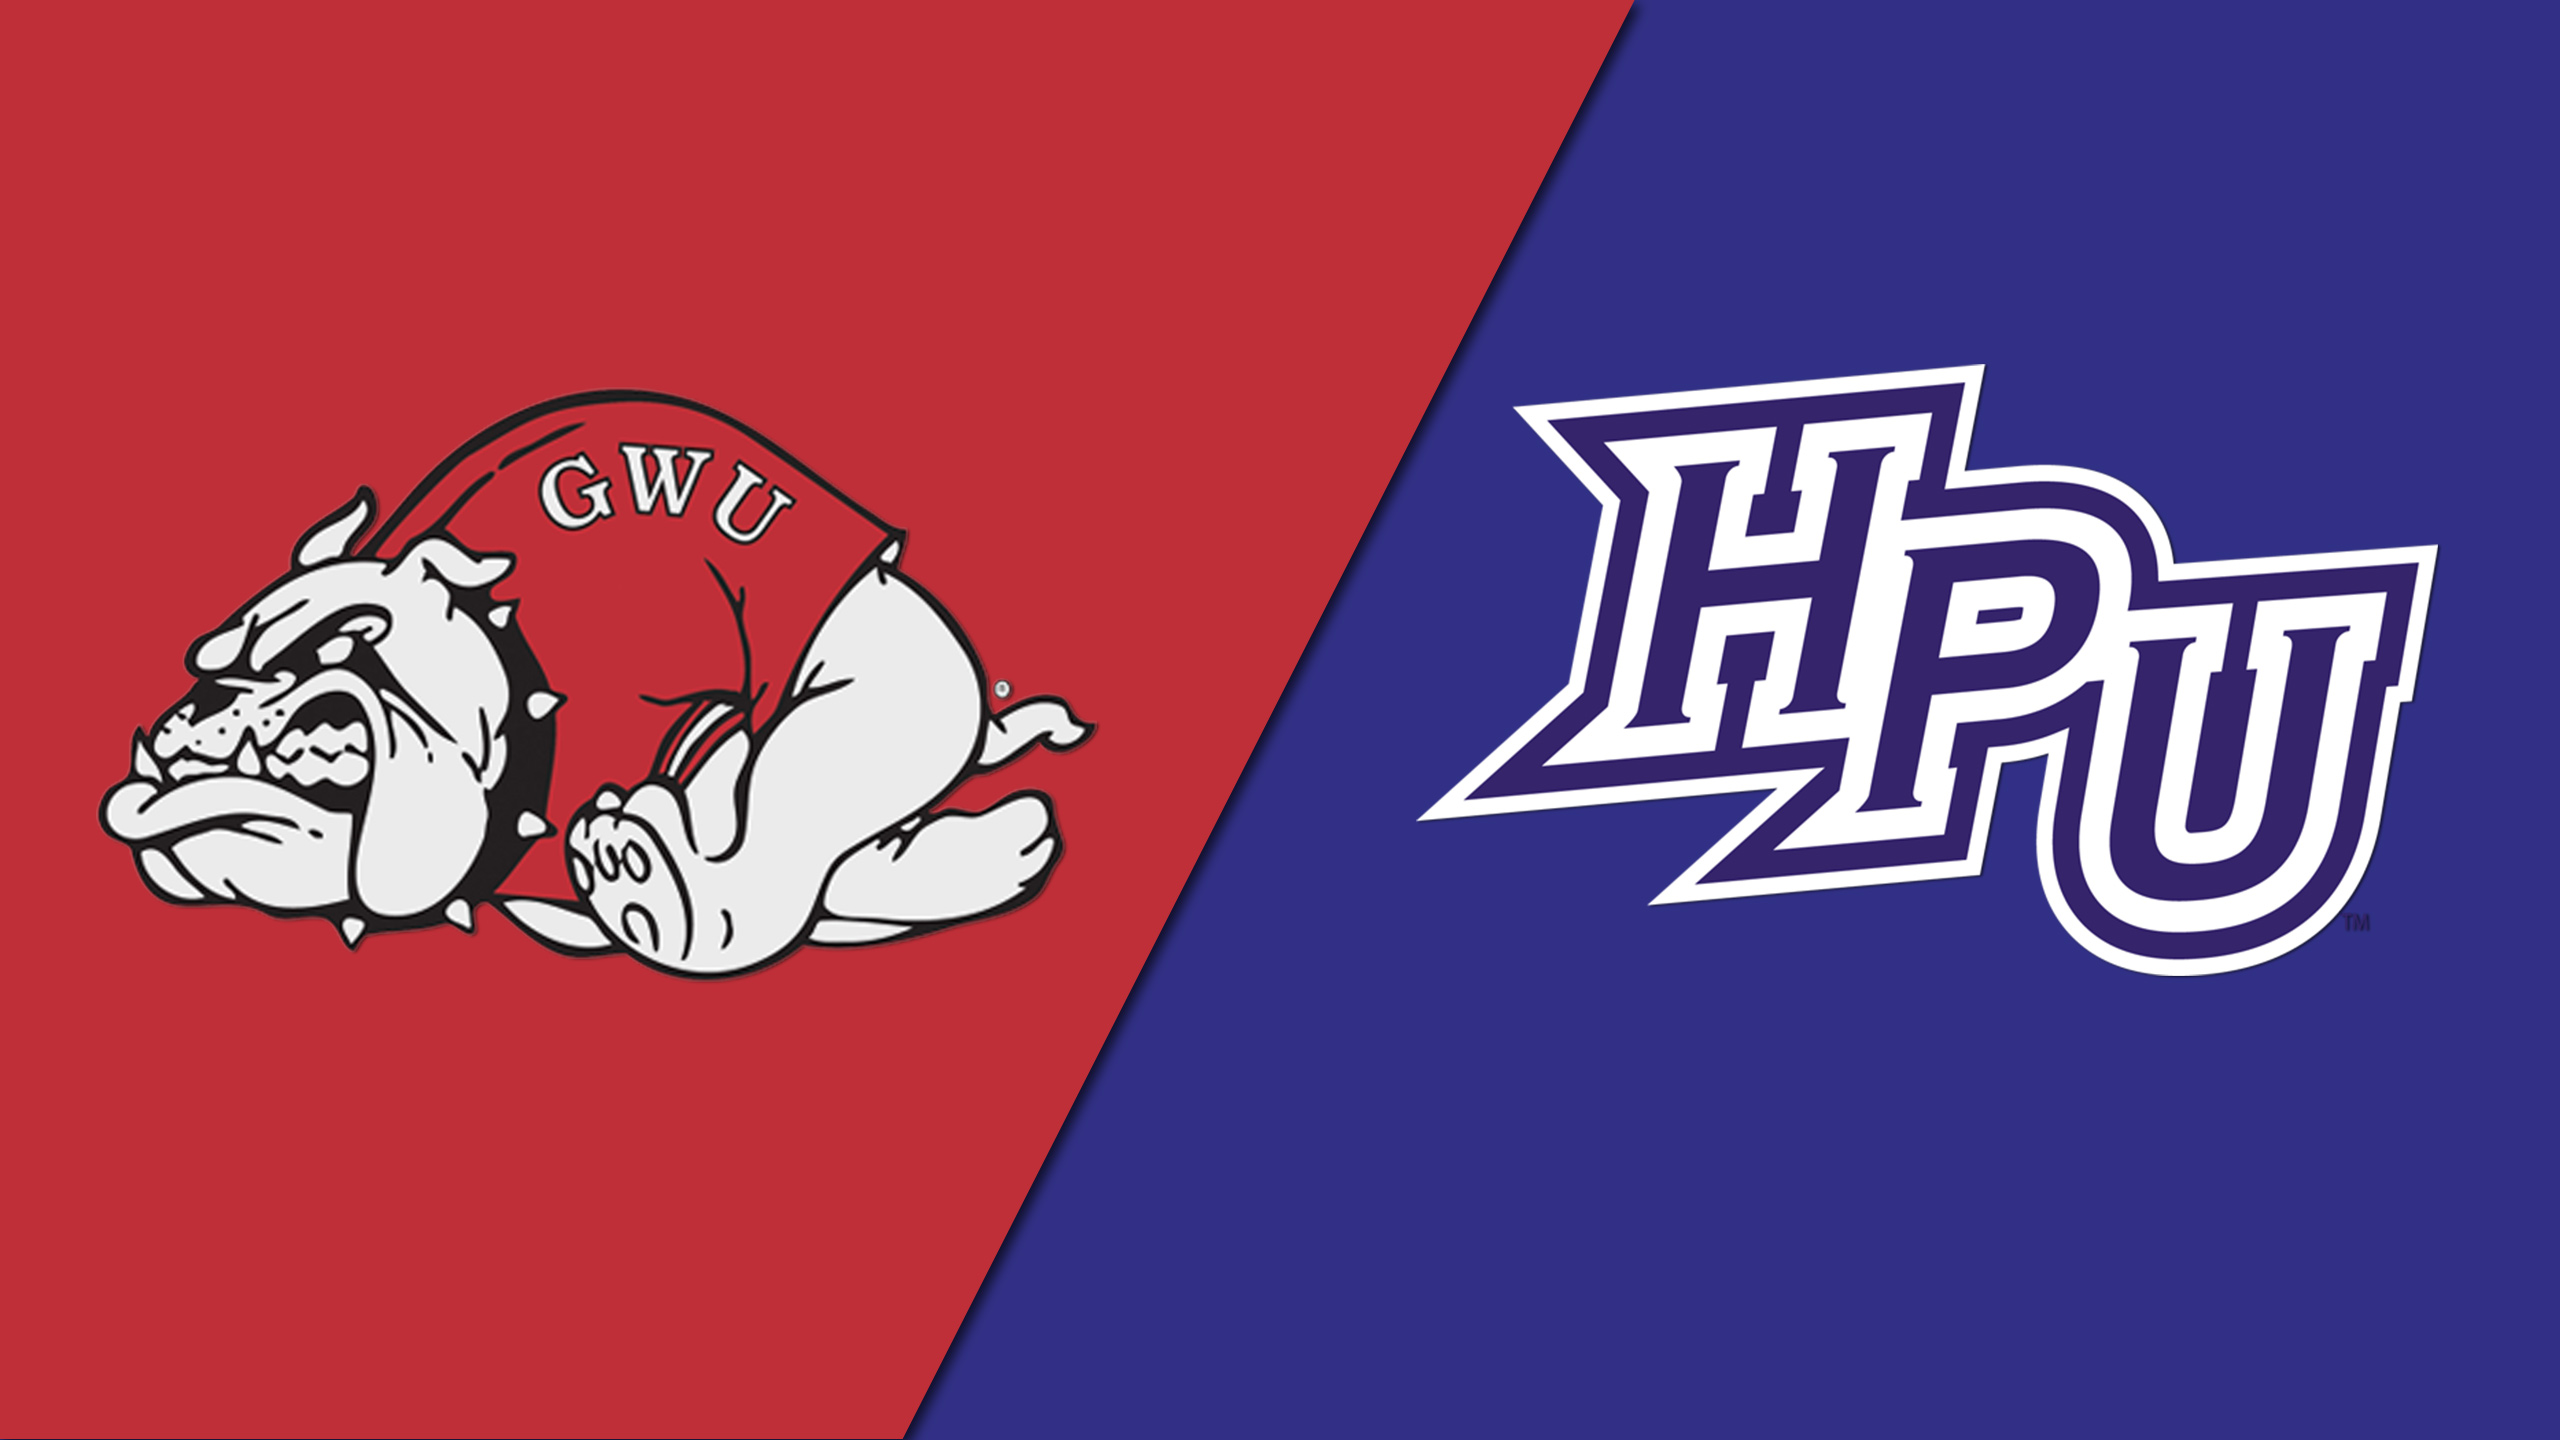 Gardner-Webb vs. High Point (Game 6)